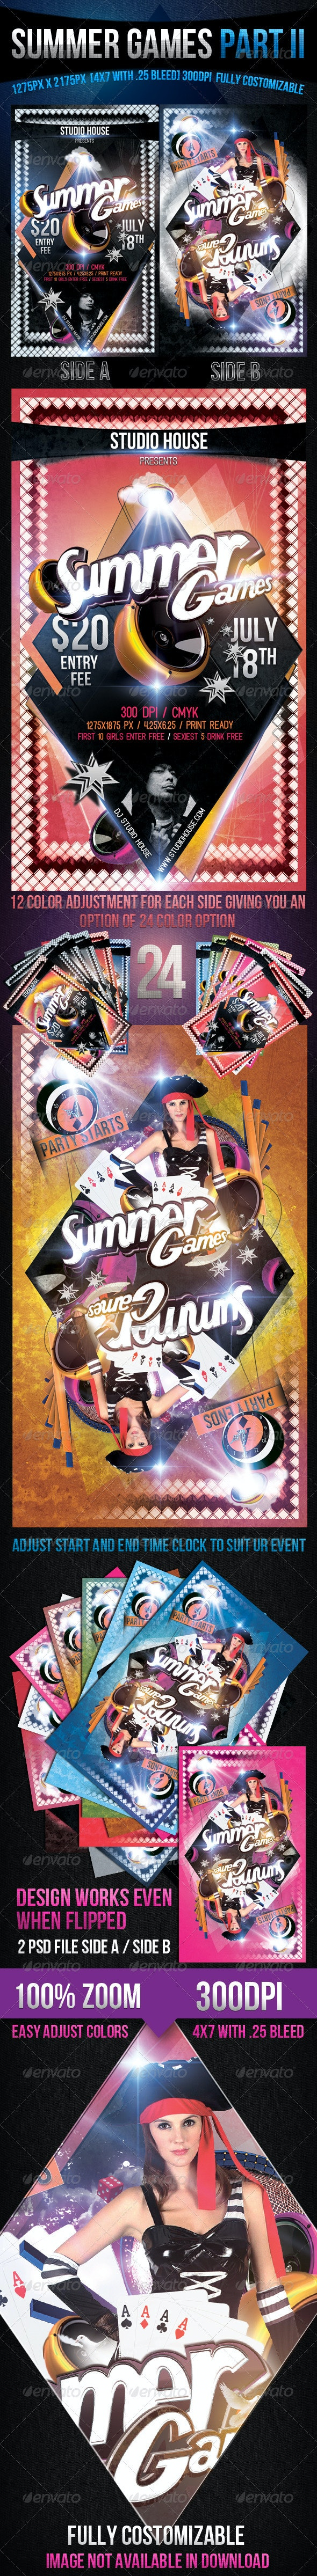 Summer Games Part 2 - Events Flyers